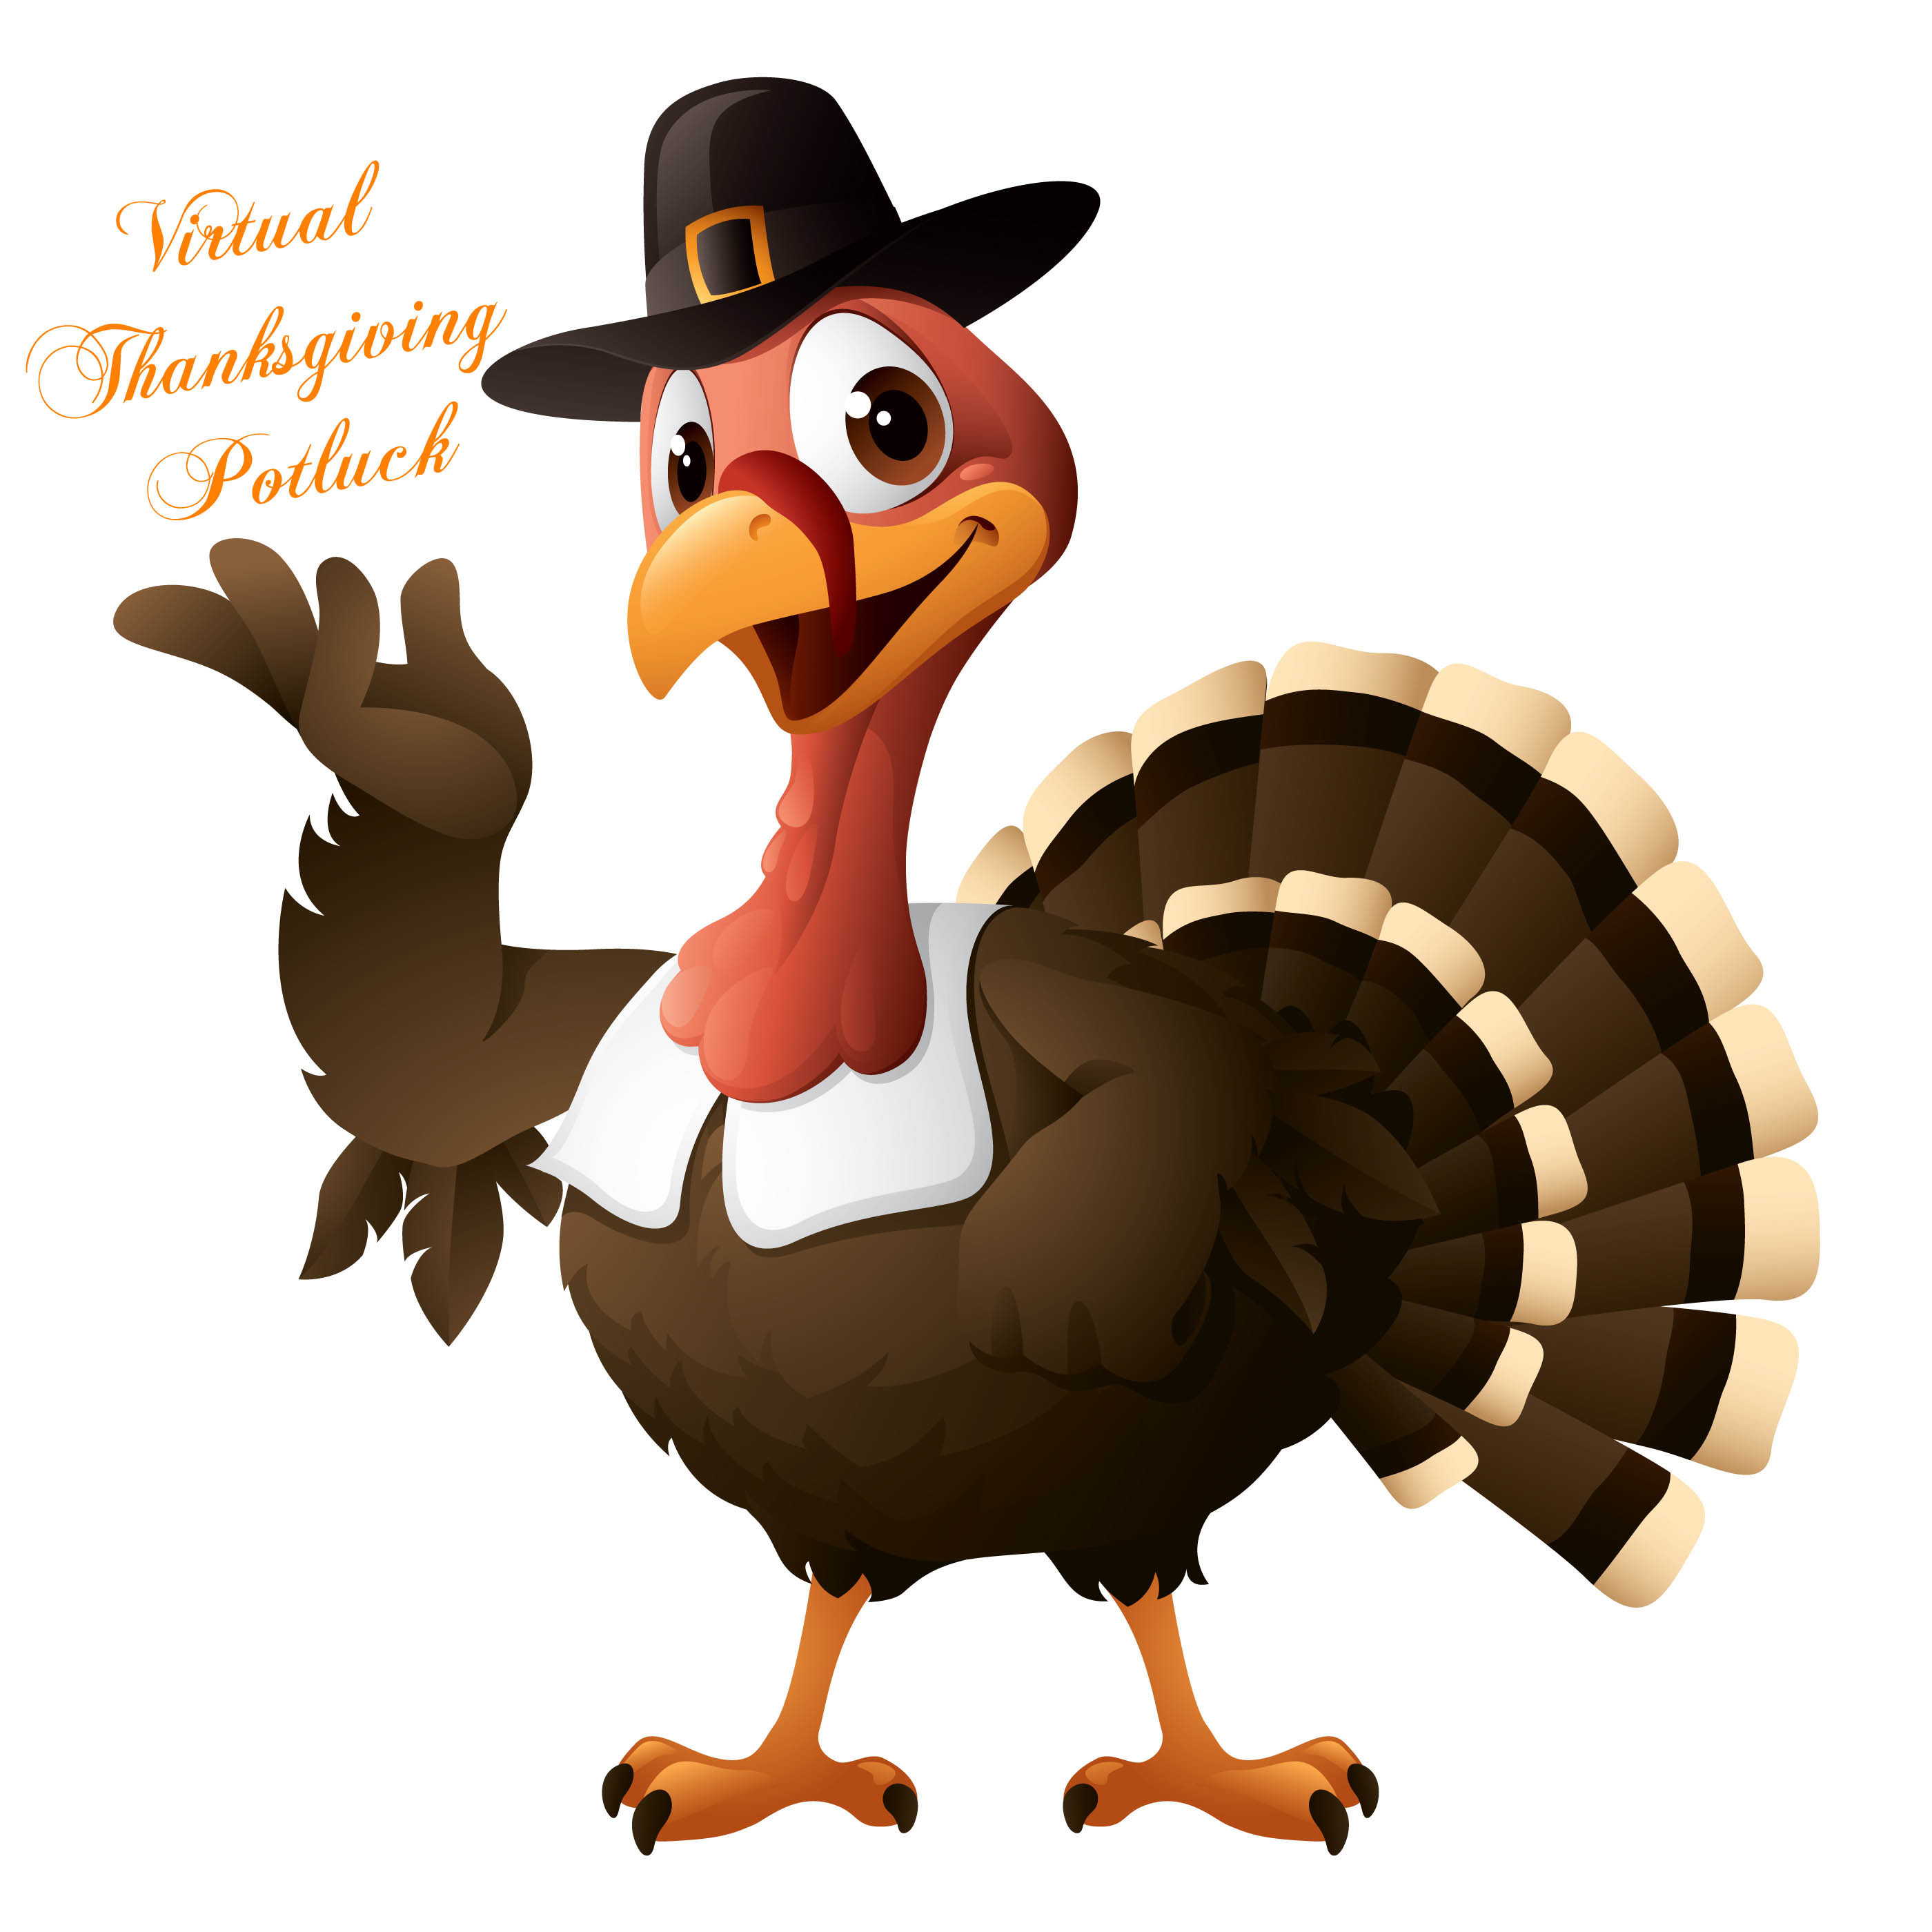 When Should I Buy My Turkey For Thanksgiving  virtual thanksgiving potluck